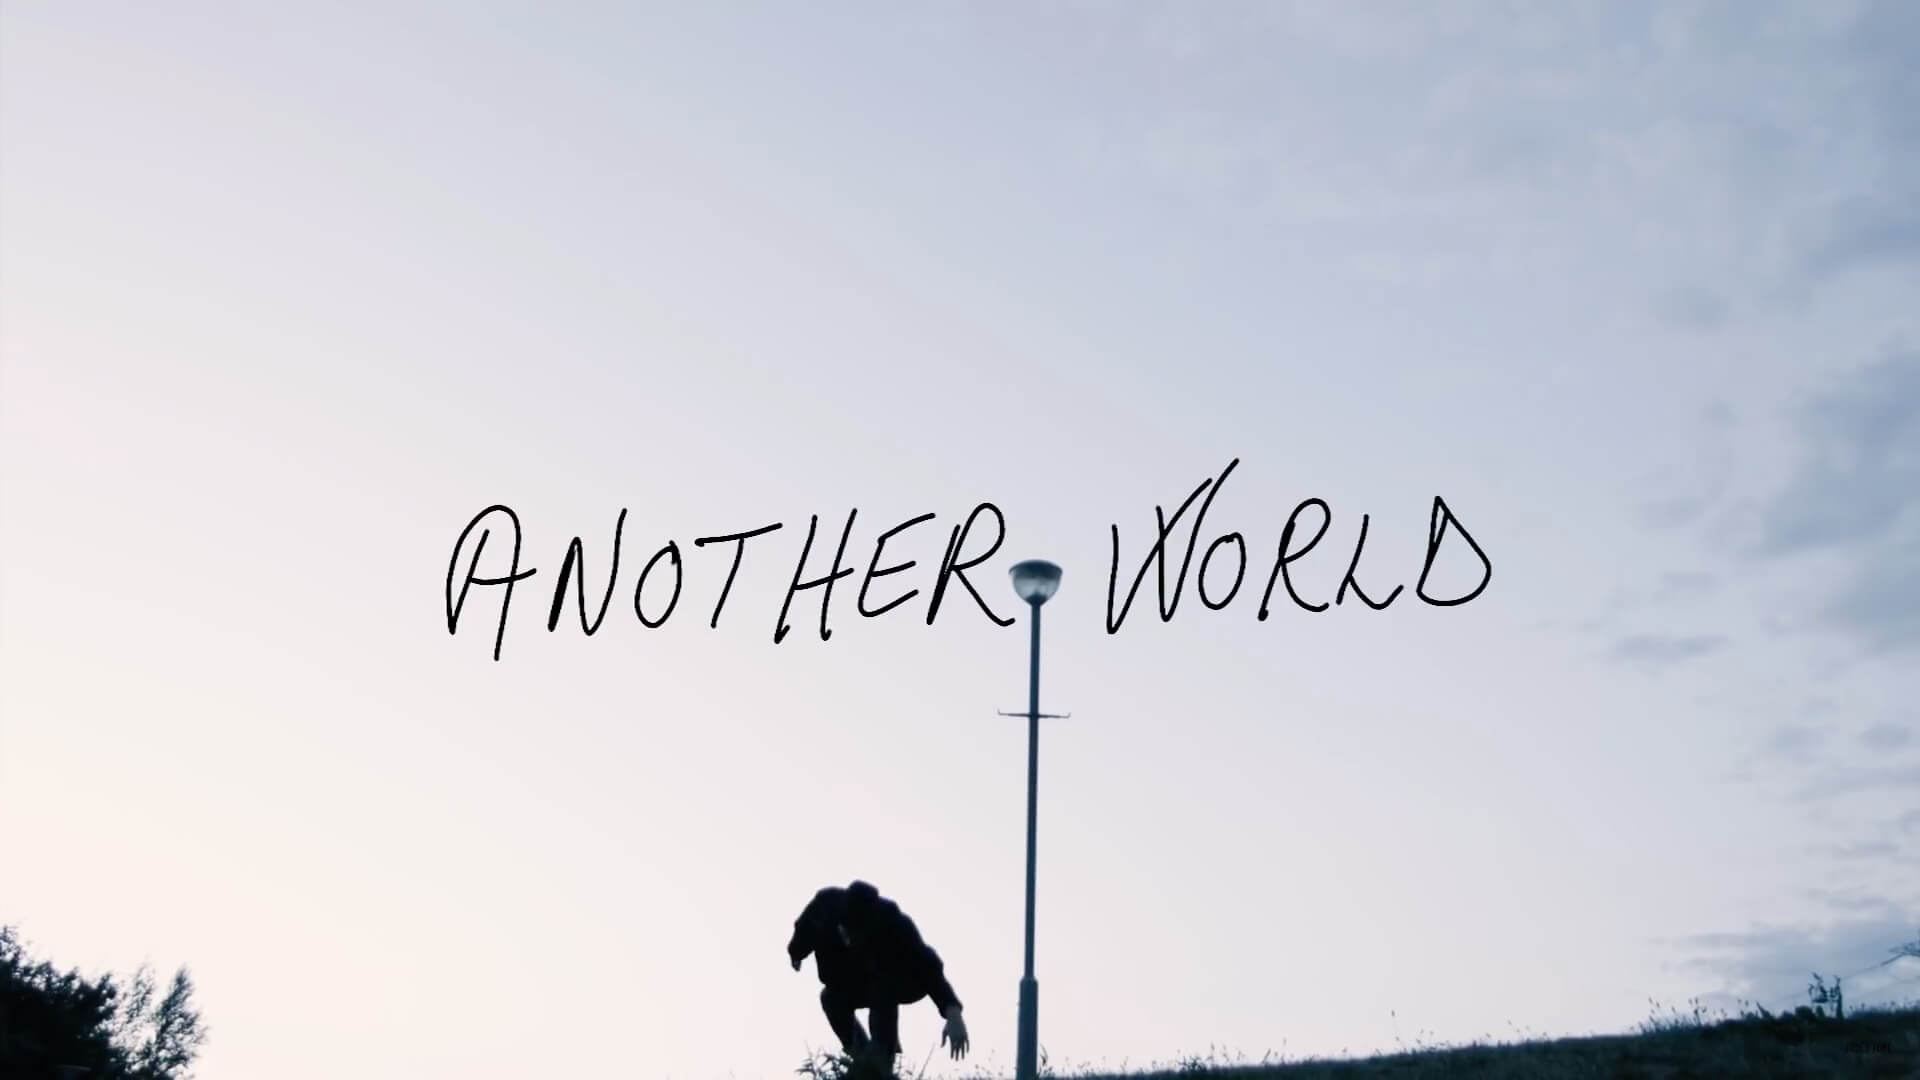 Mile Away Films music video image: Another world video